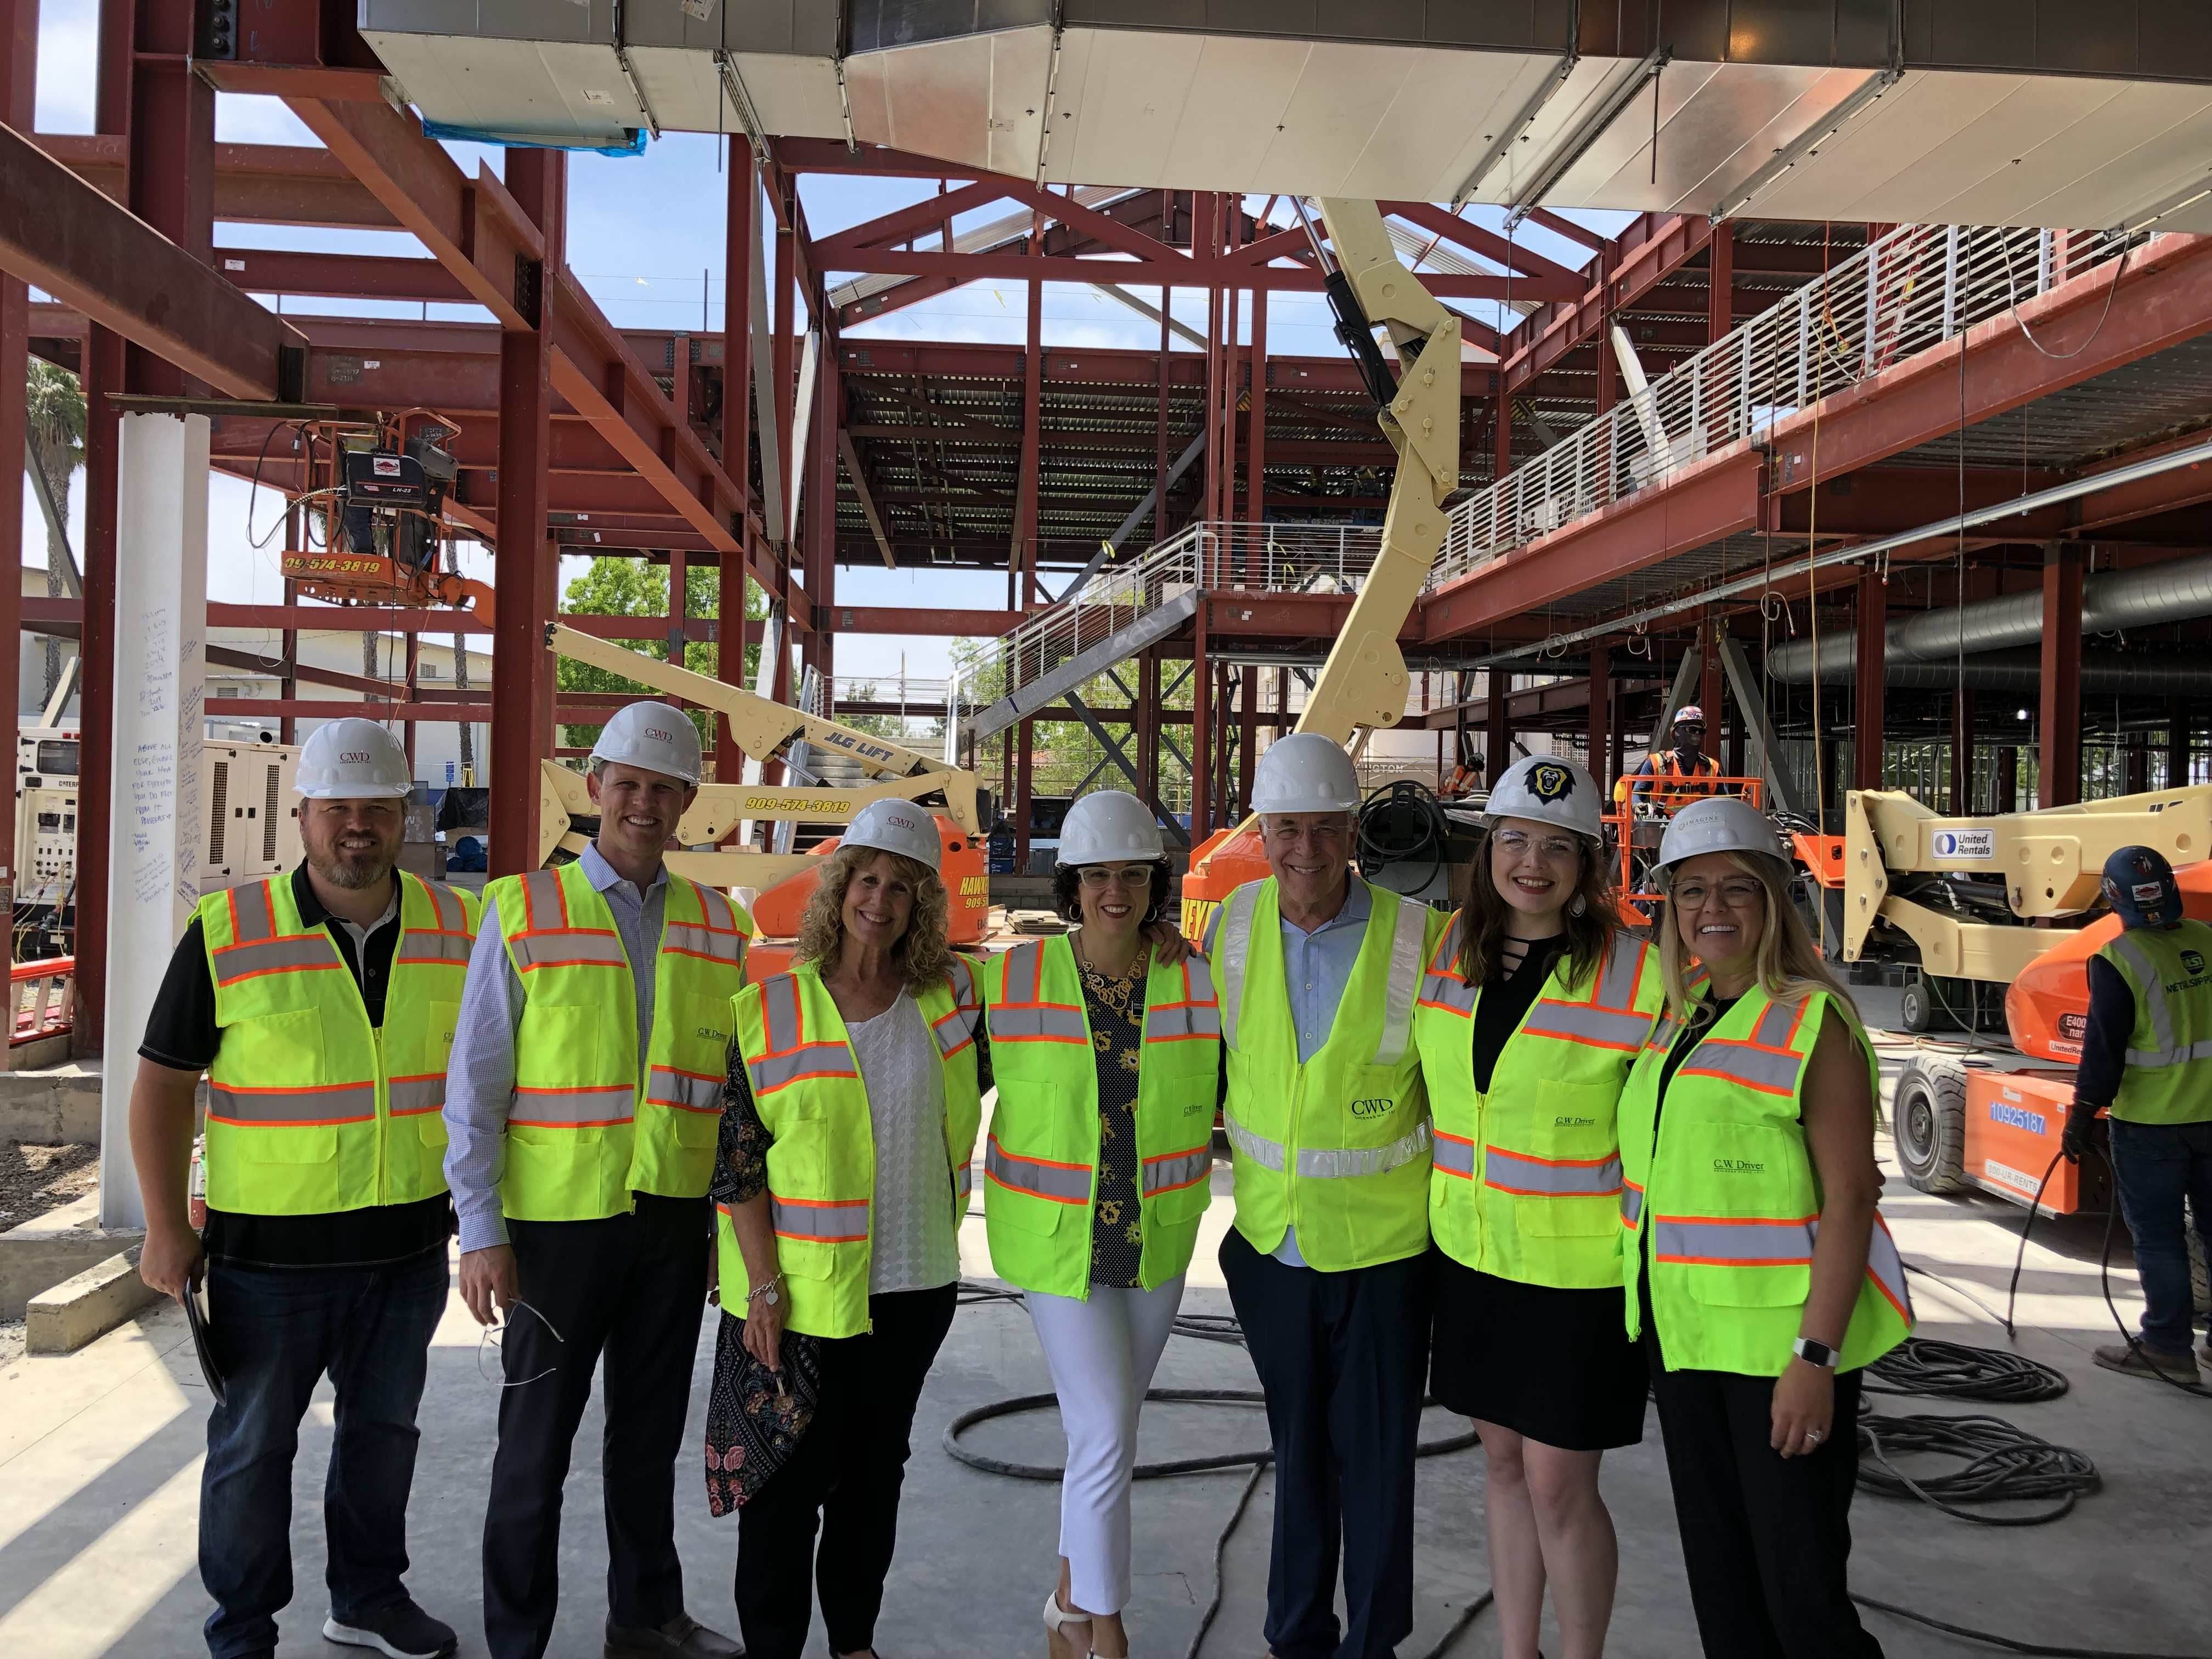 Alumni Board Tours the Site